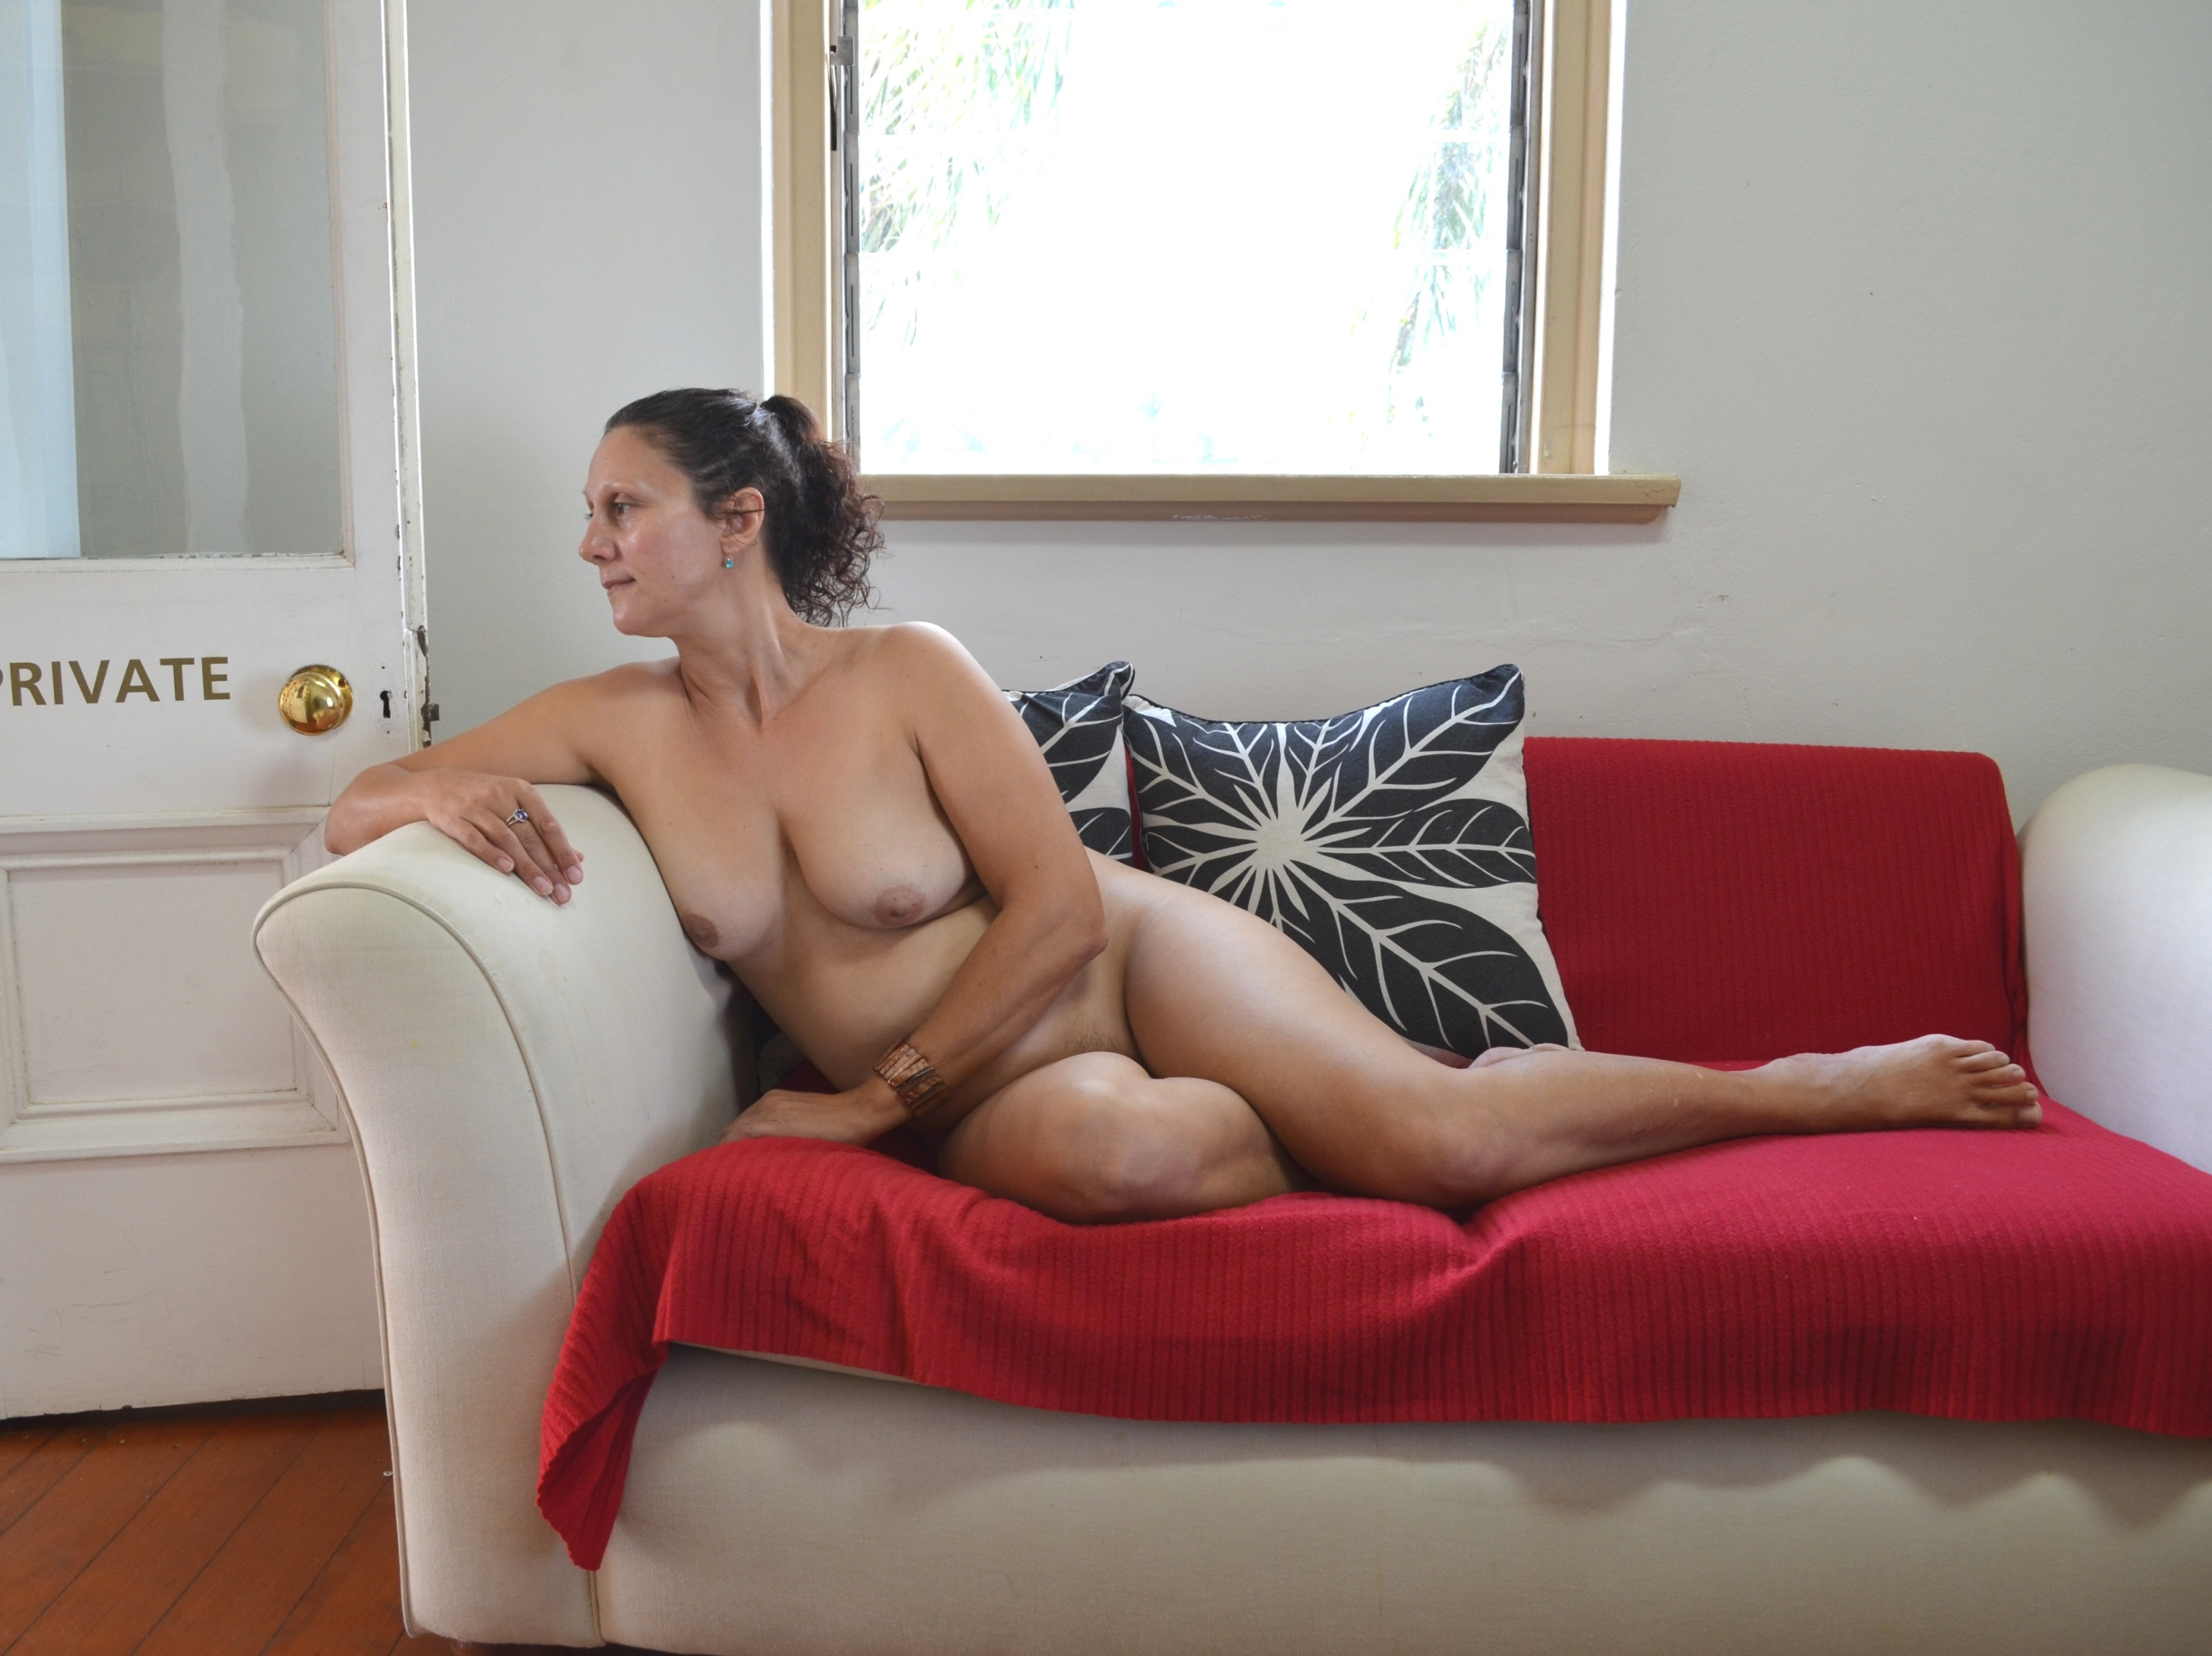 nude art mature photo - sexy stripers